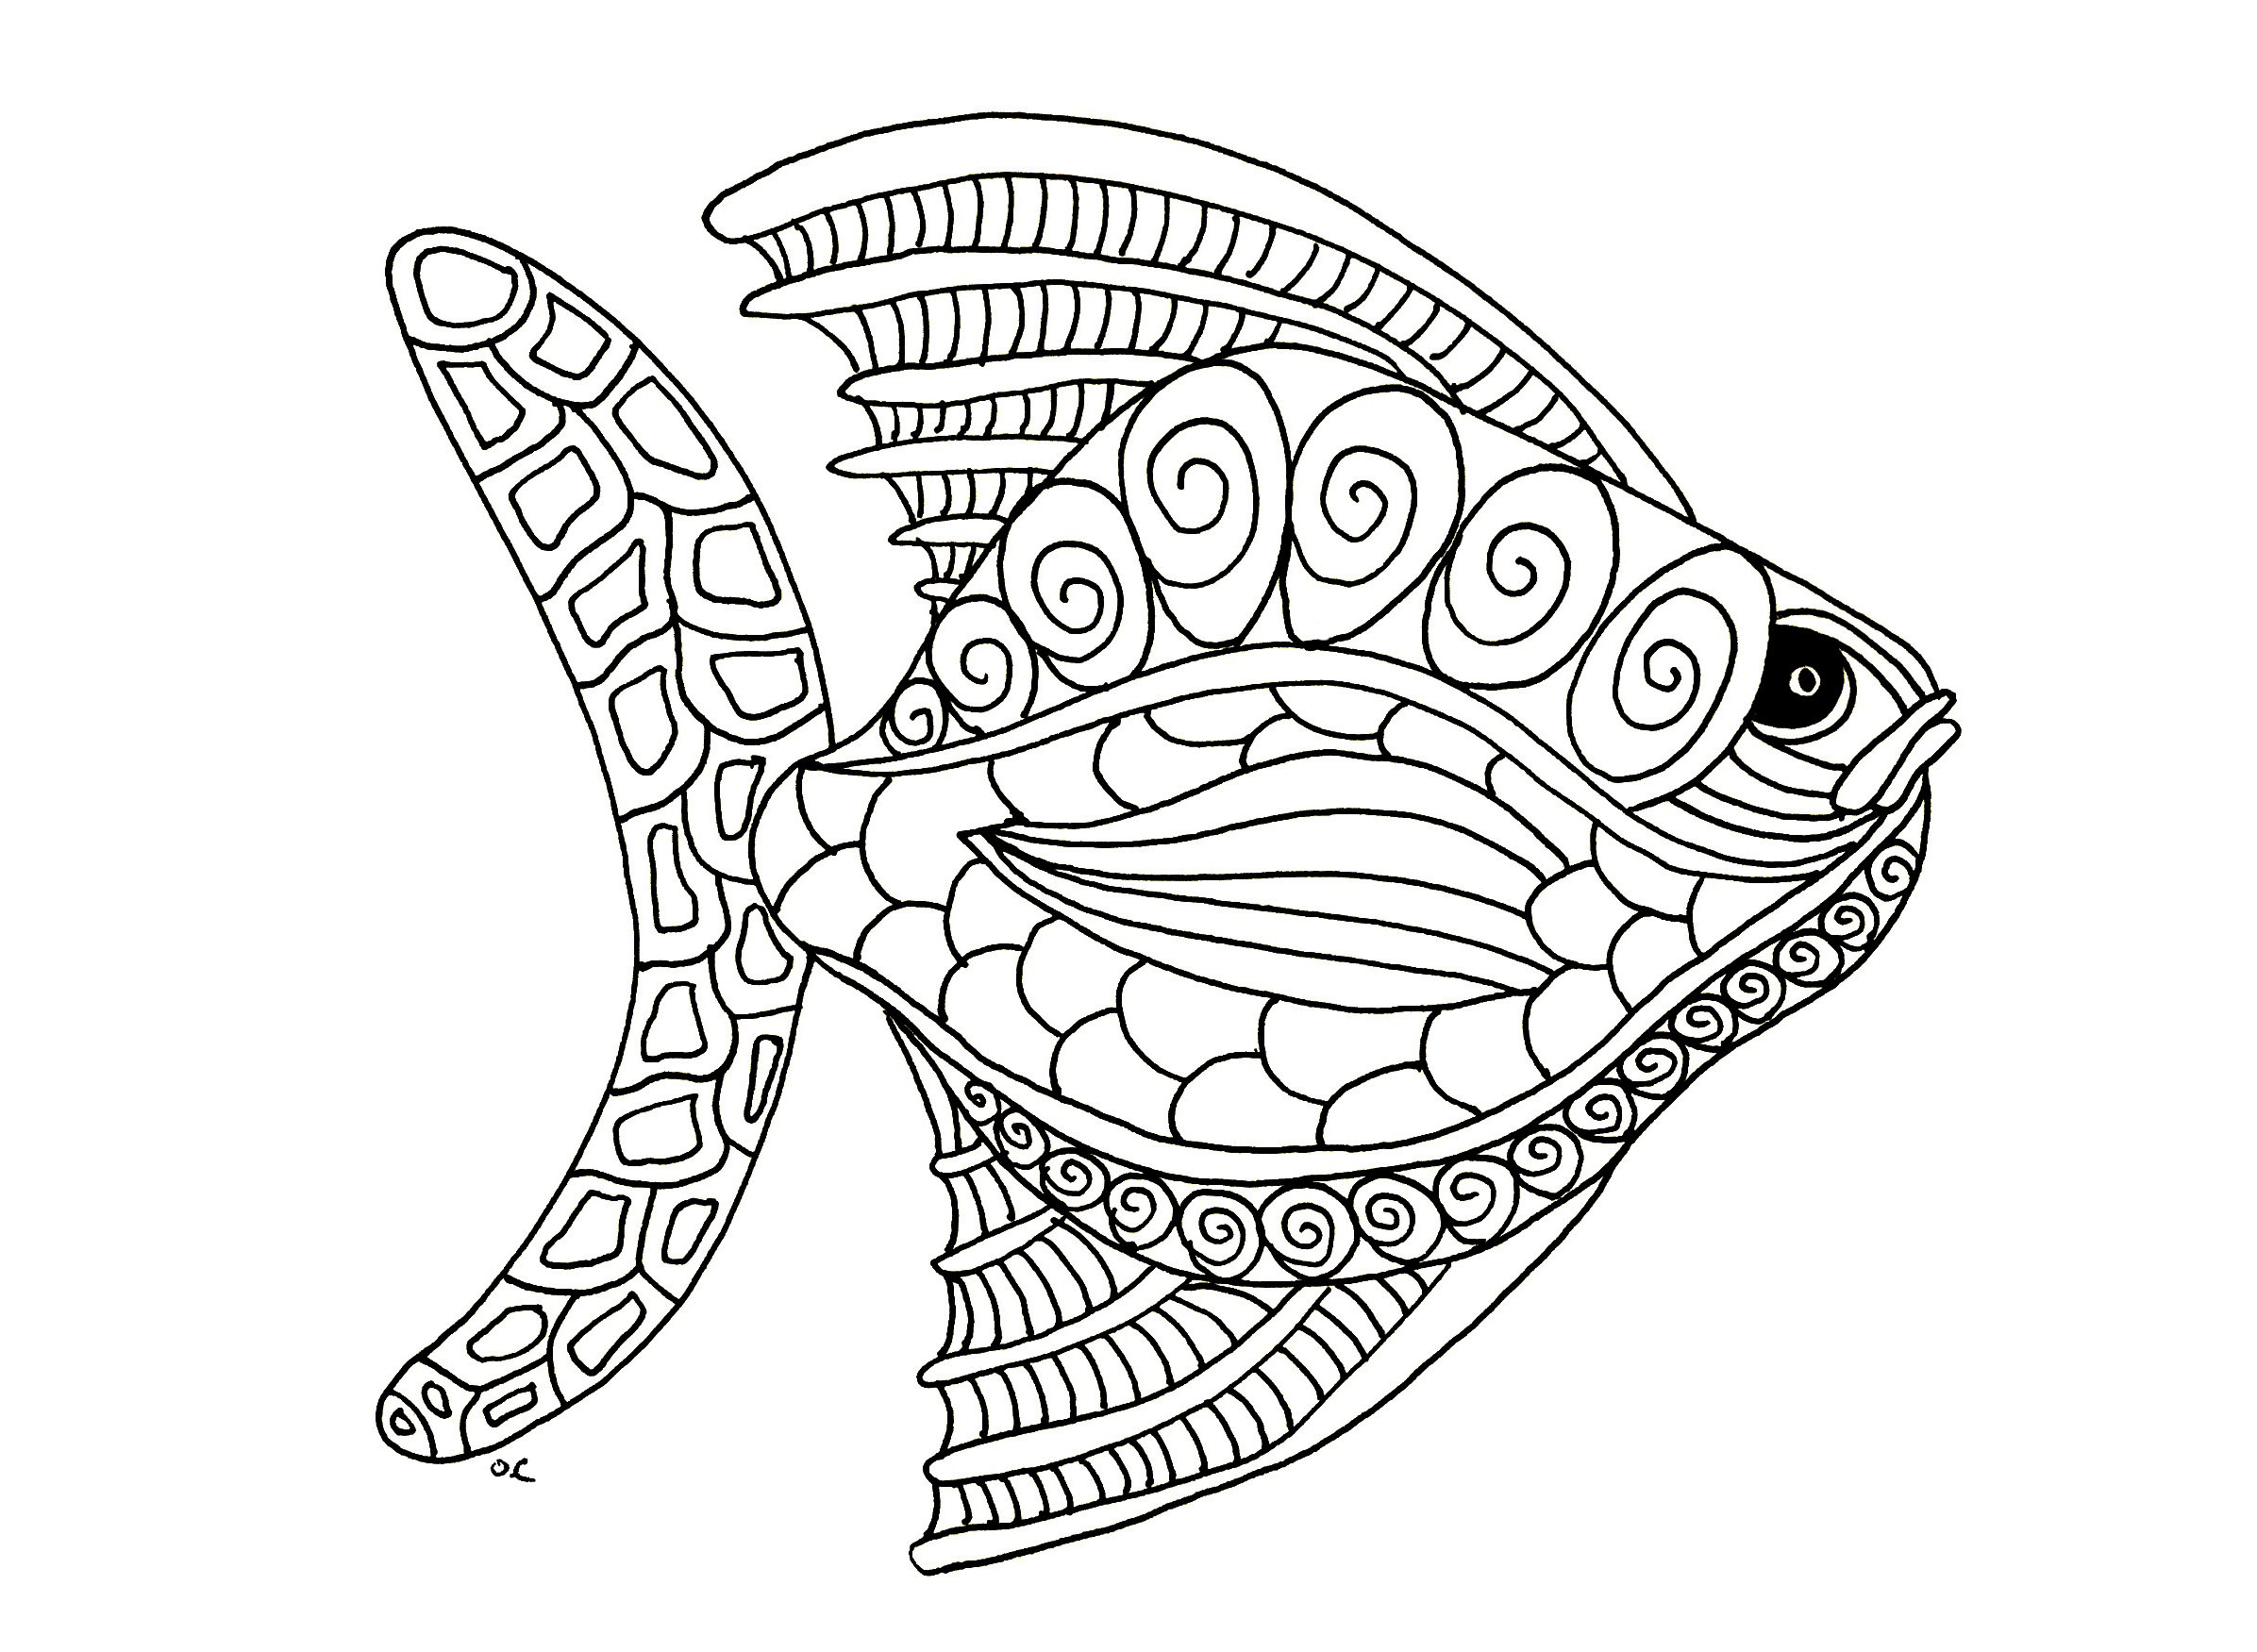 Animal Coloring Pages for Adults - Best Coloring Pages For Kids